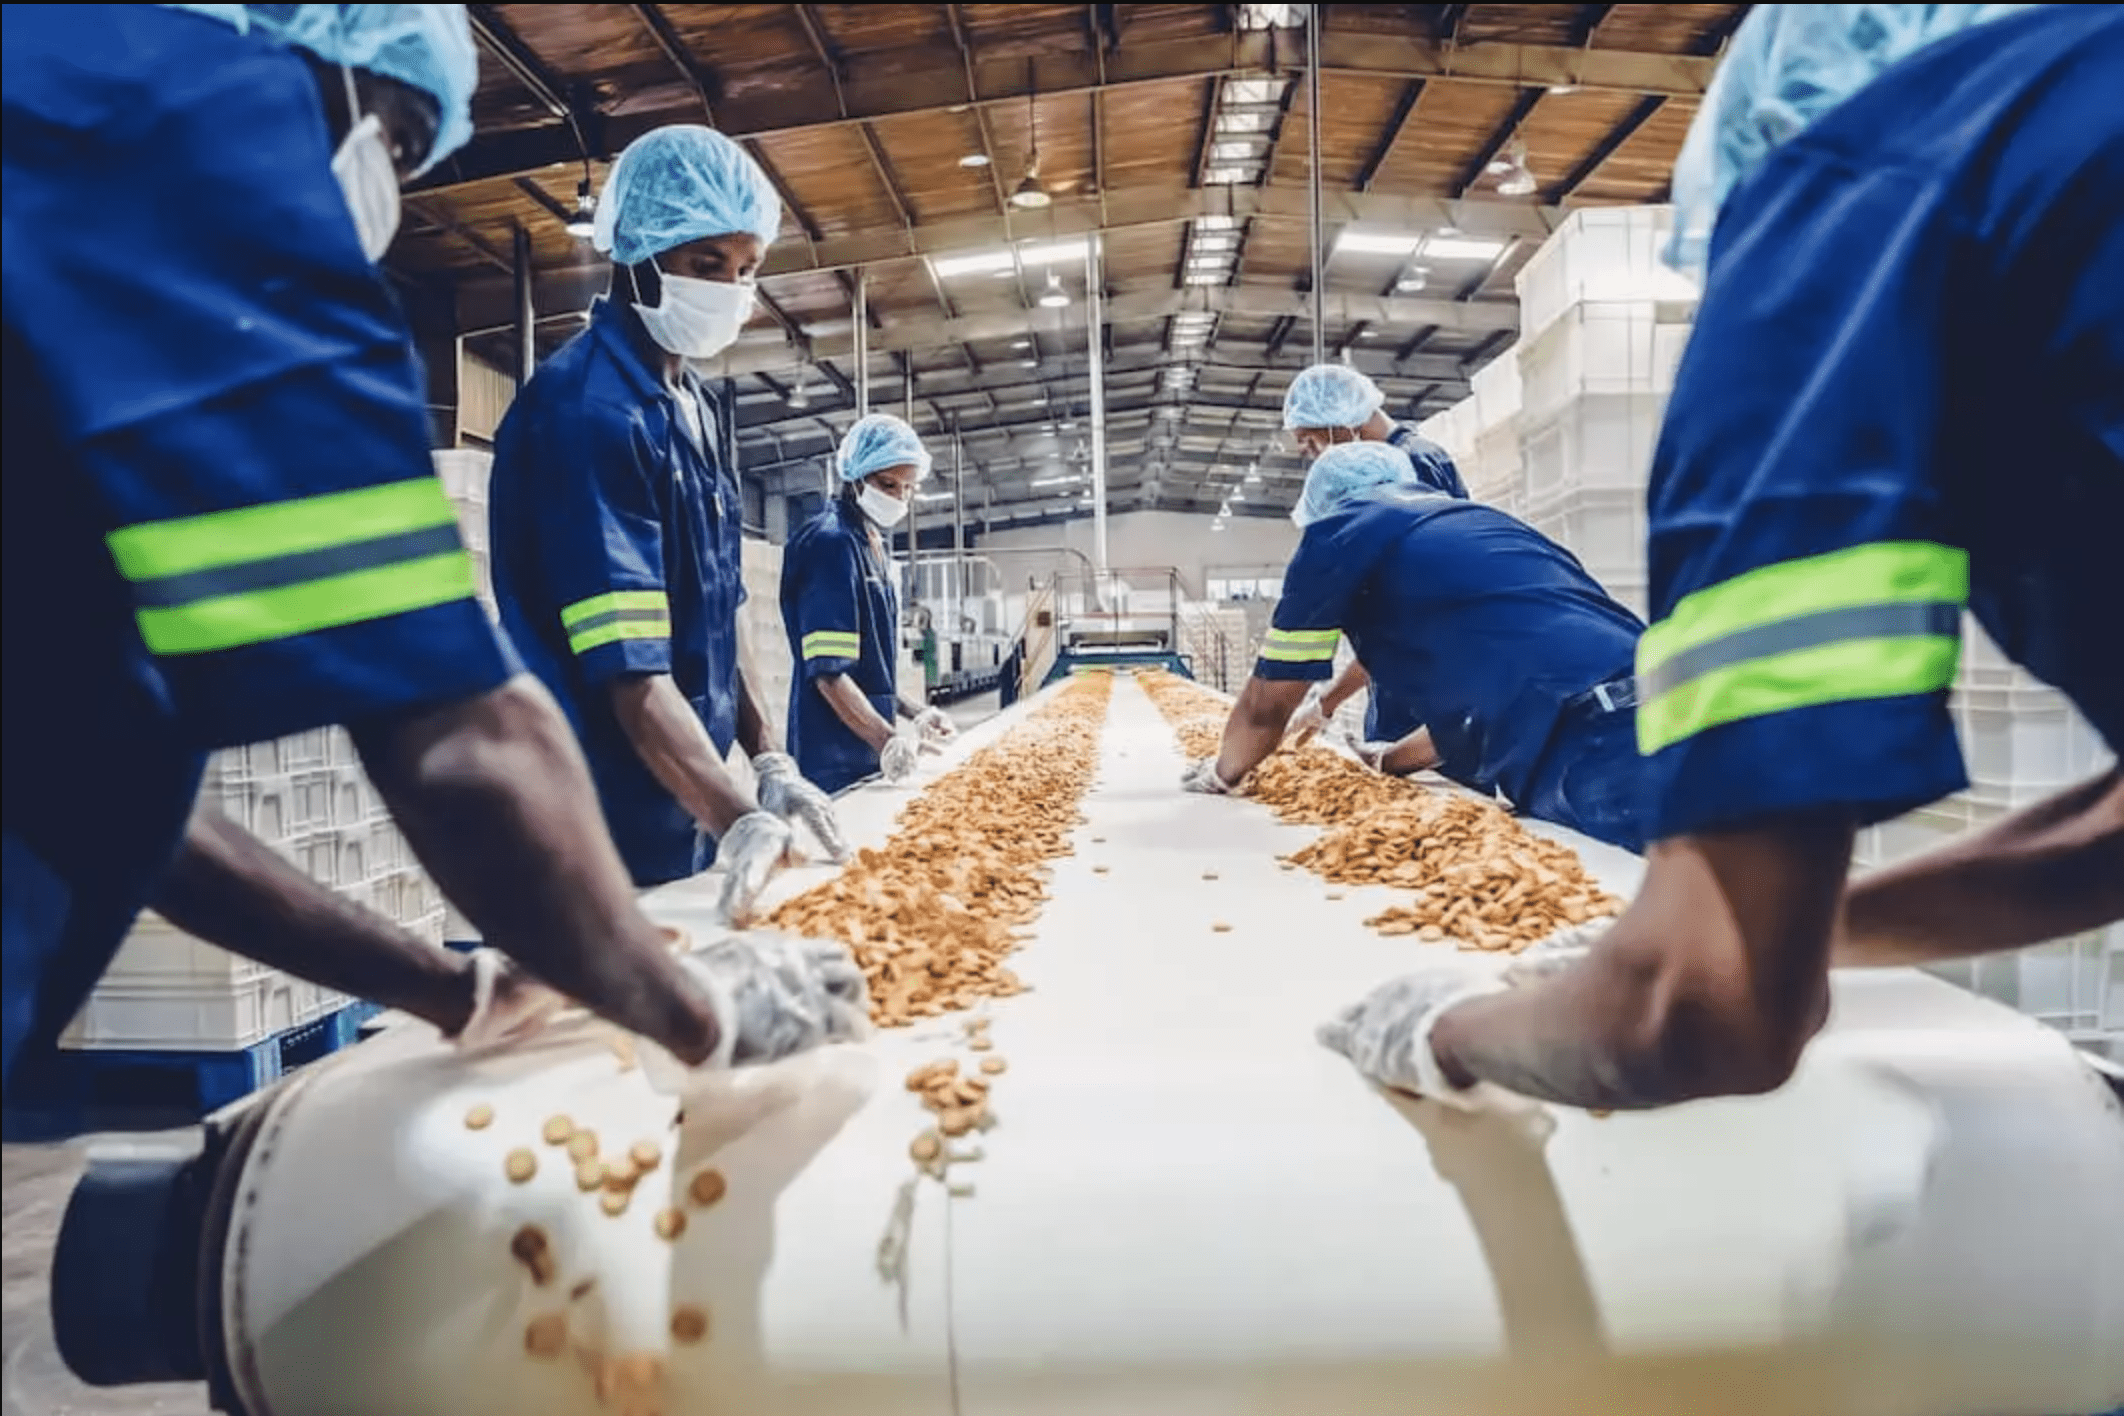 How to Increase Staffing Flexibility to Meet Production Goals and Control Labor Costs